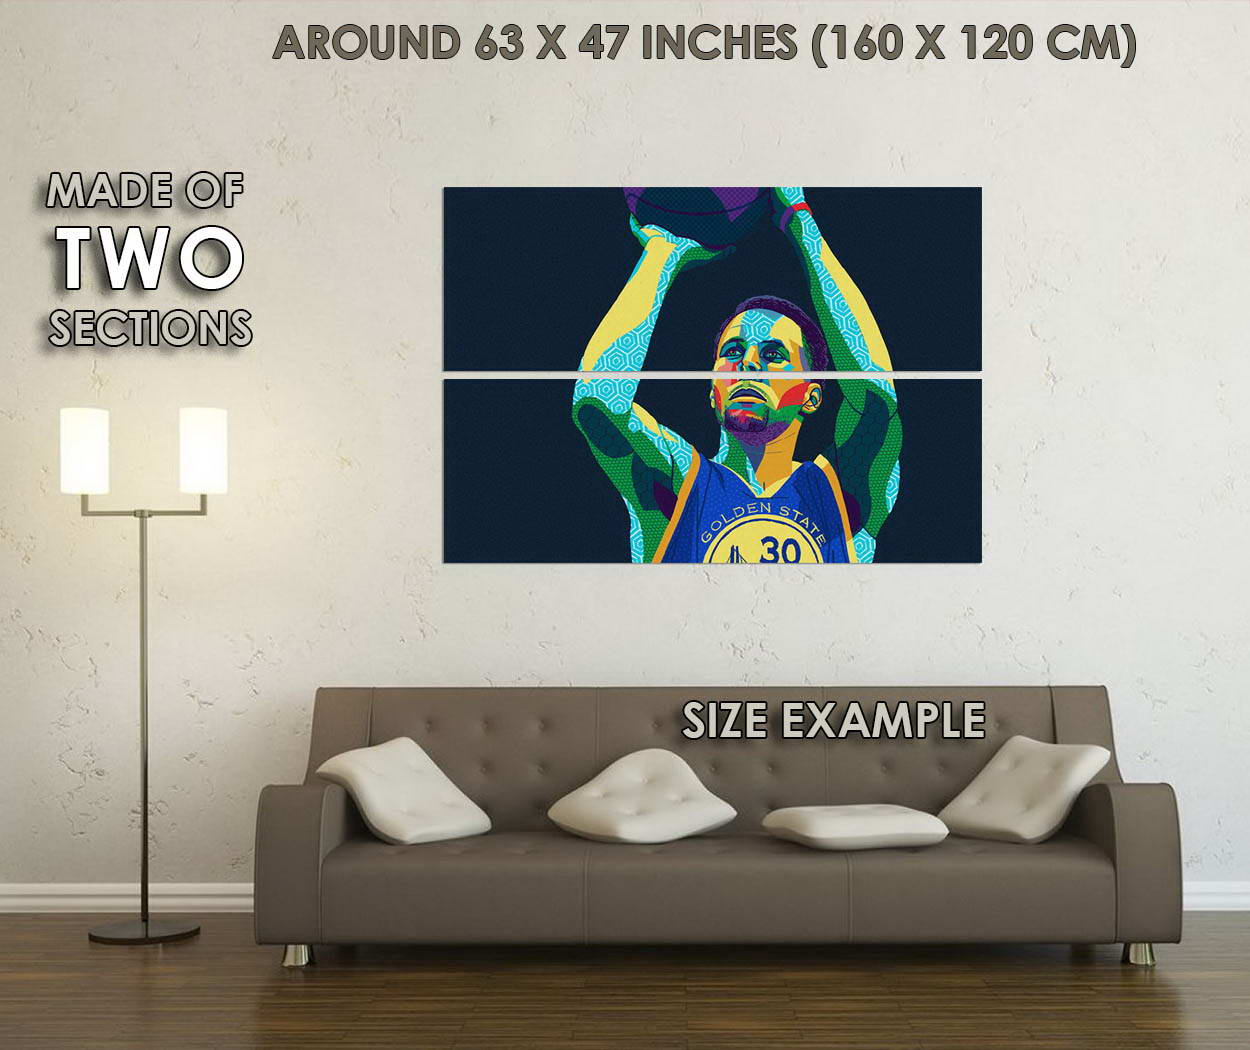 10591-Stephen-Curry-Super-Basketball-Star-LAMINATED-POSTER-CA thumbnail 6